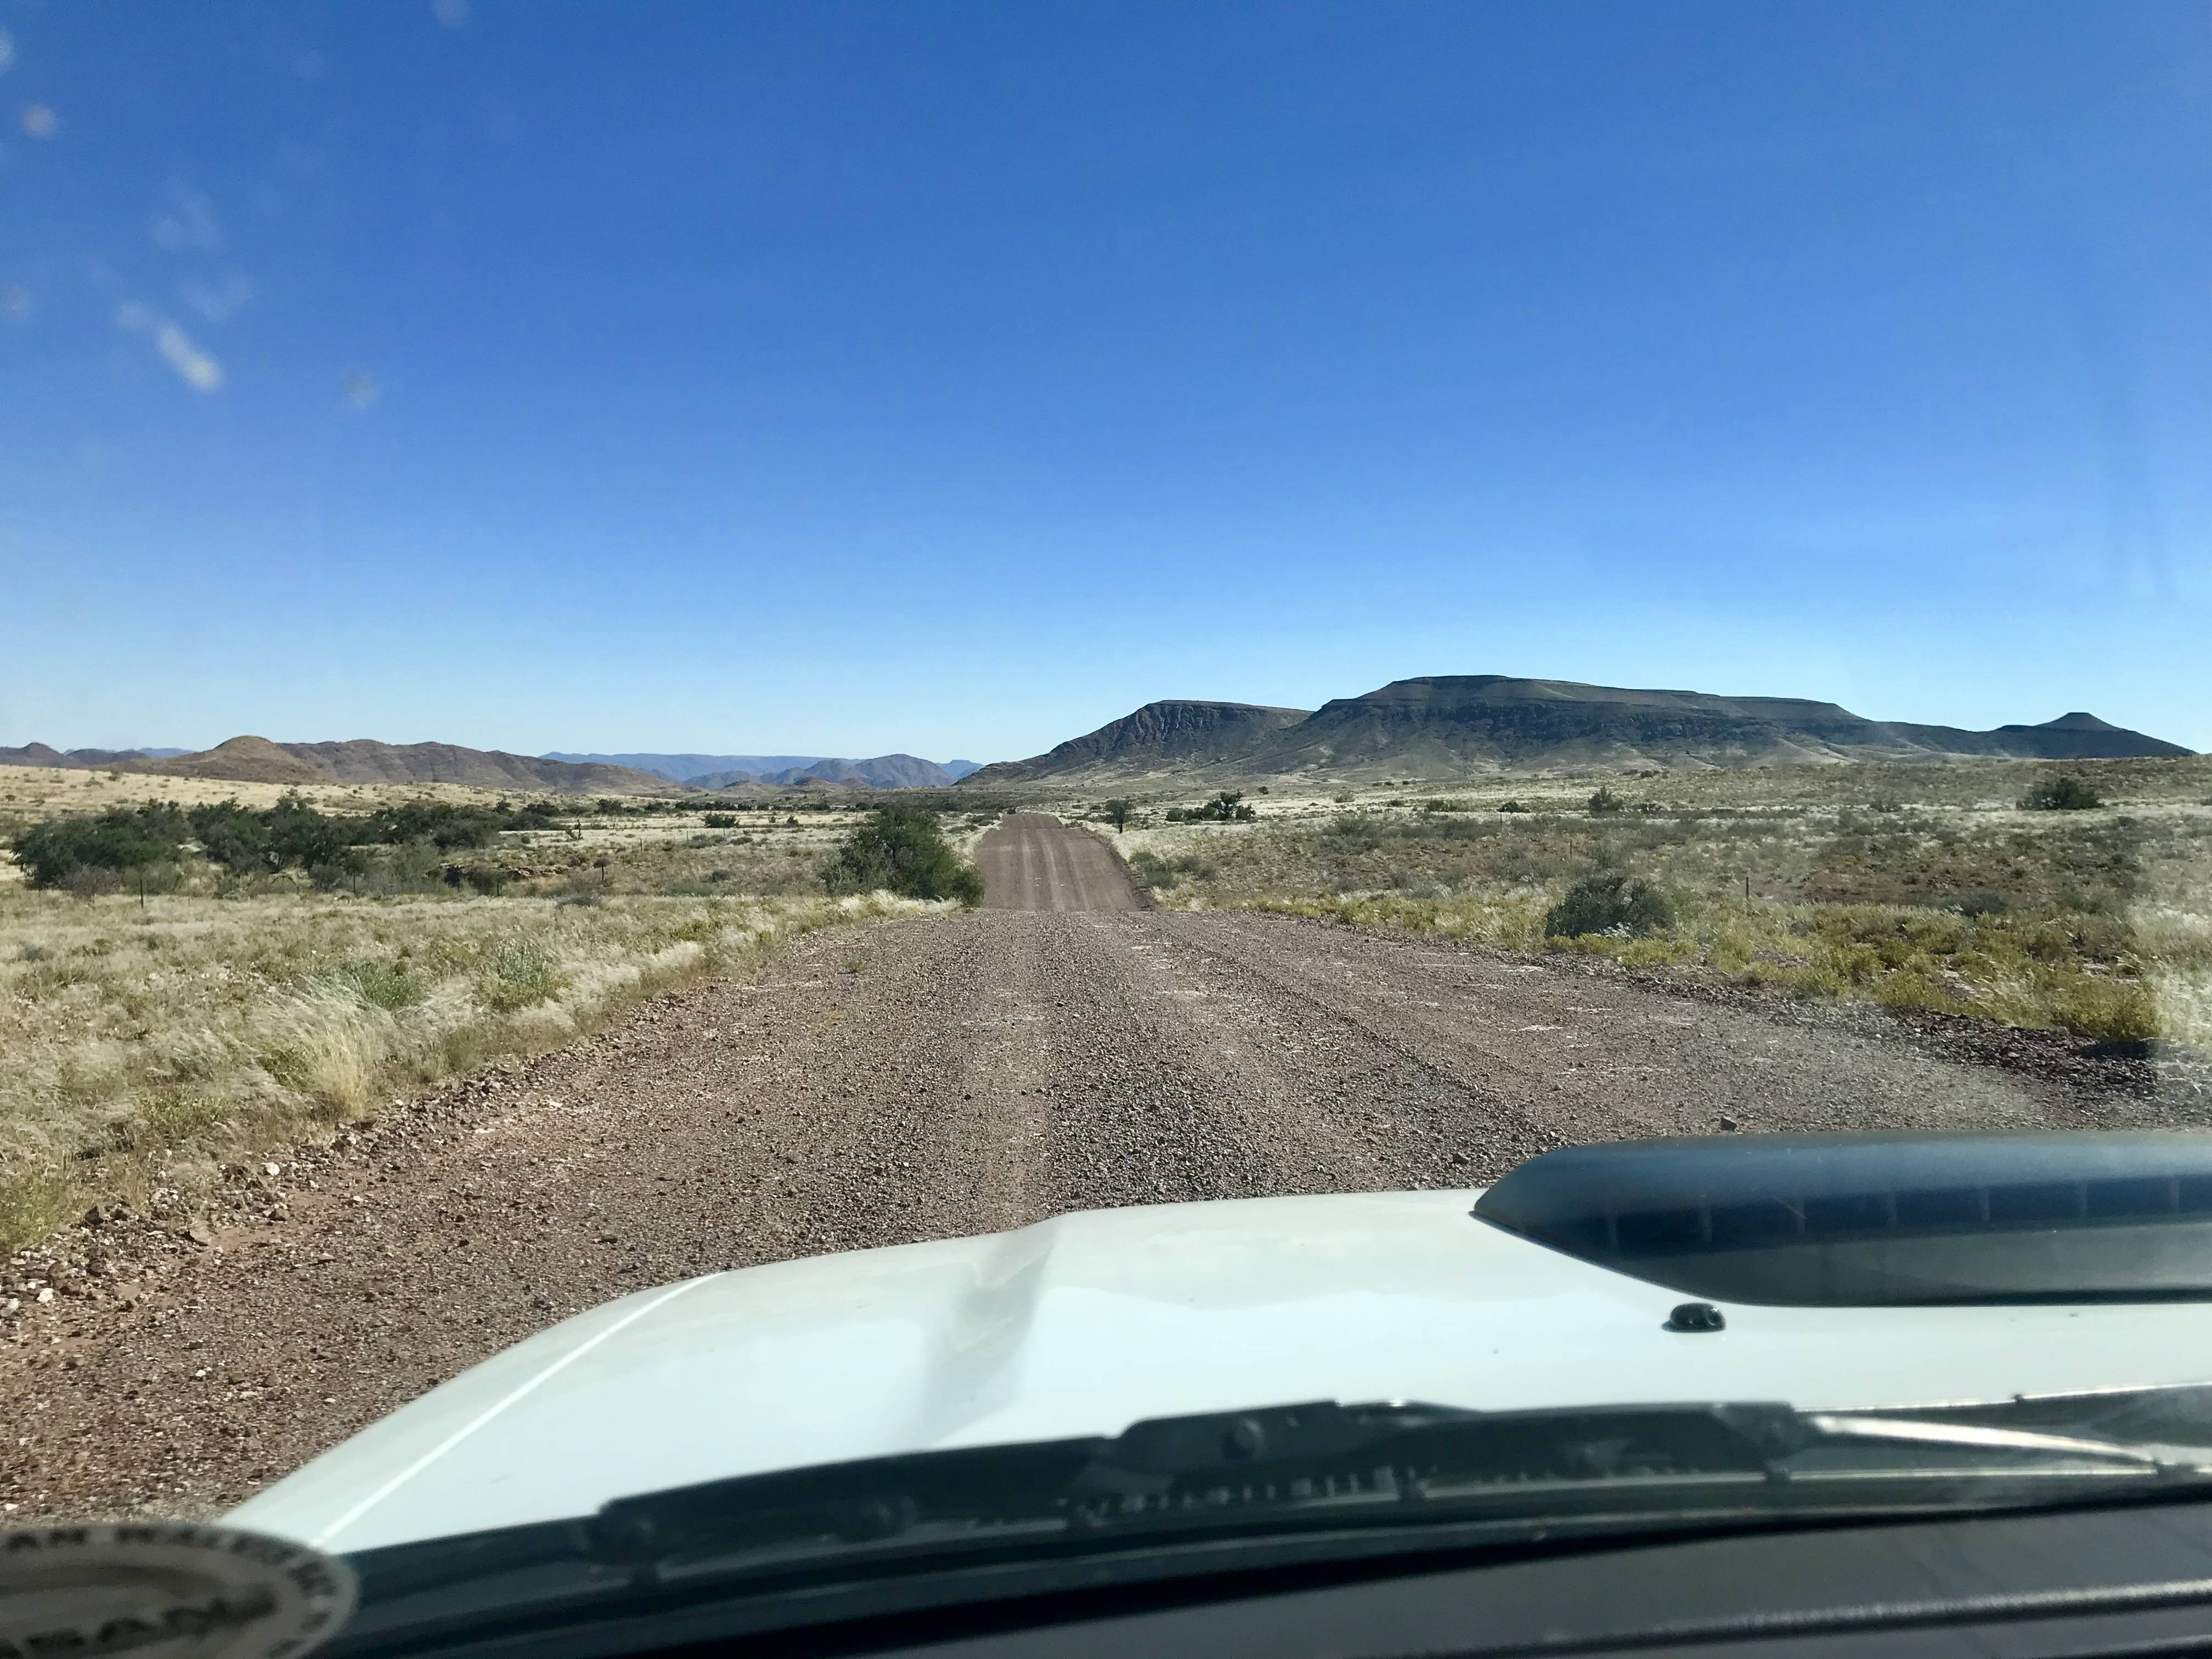 Namibia Self Drive Safari - Driving Tips, Road Conditions + Safety